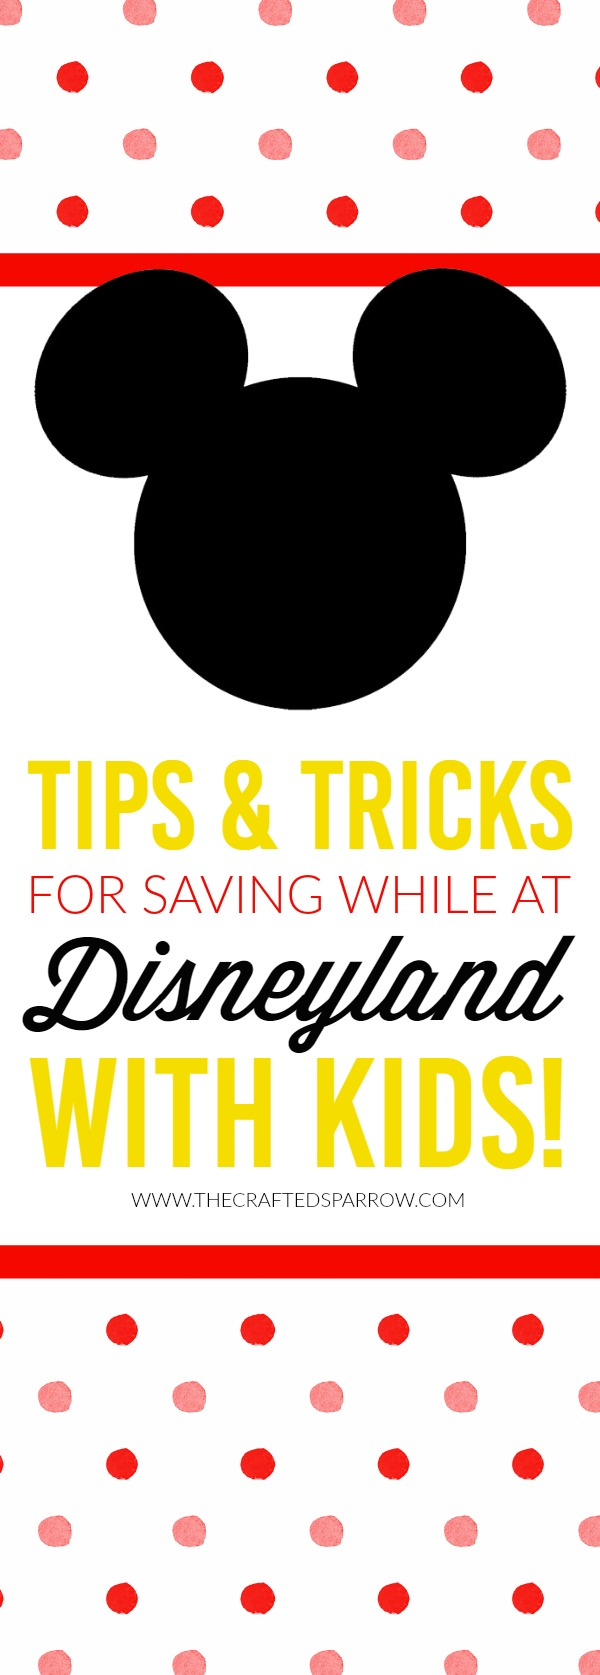 Tips & Tricks for Saving While At Disneyland with Kids!